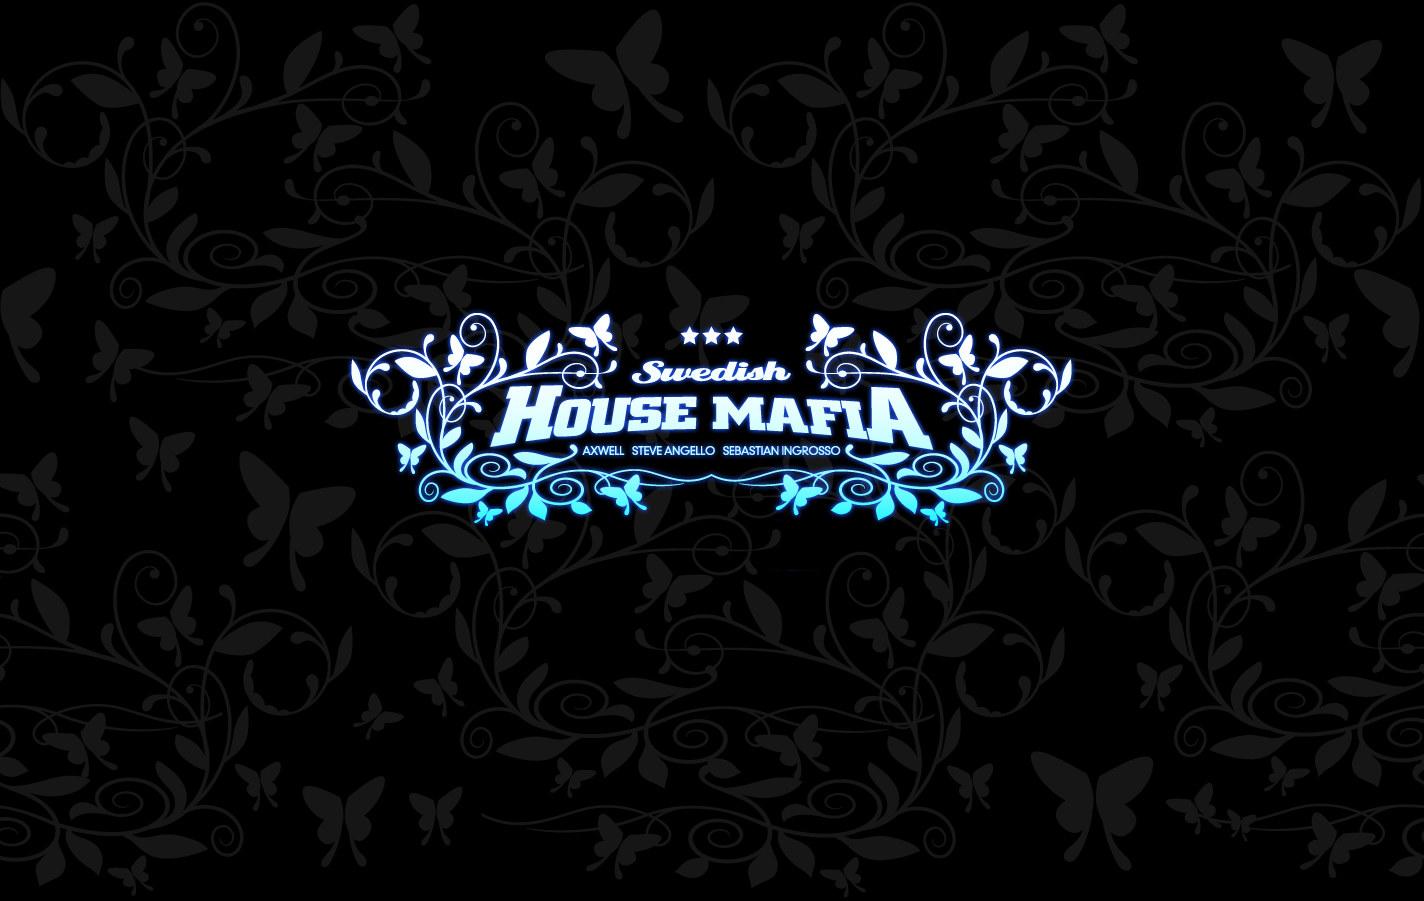 74 Swedish House Mafia Wallpaper On Wallpapersafari